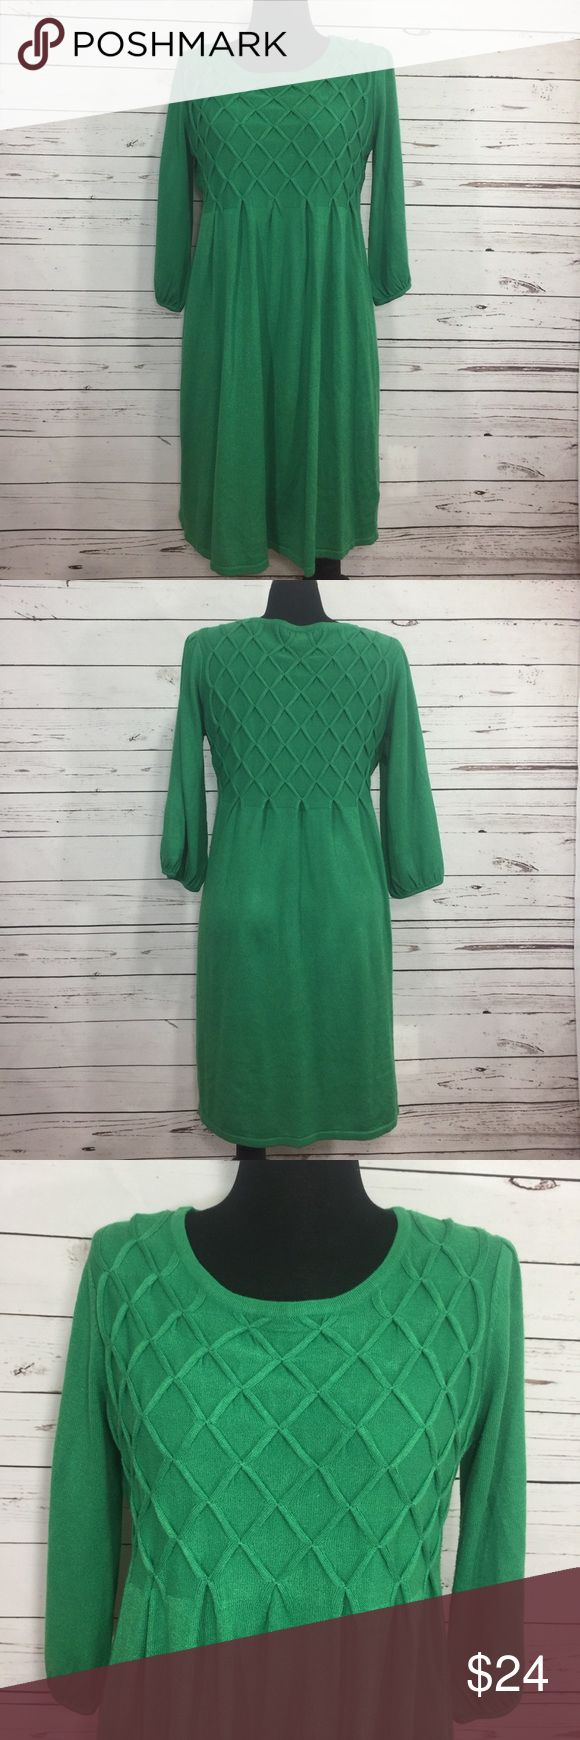 """Green sweater Dress XL Fall will be here before you know it. This dress is fall perfect! Pair with leggings and boots 😍 Cute green sweater dress. Unstretched armpit to armpit 20"""", waist 19"""", length 38.5"""" great condition Alyx Dresses Midi"""